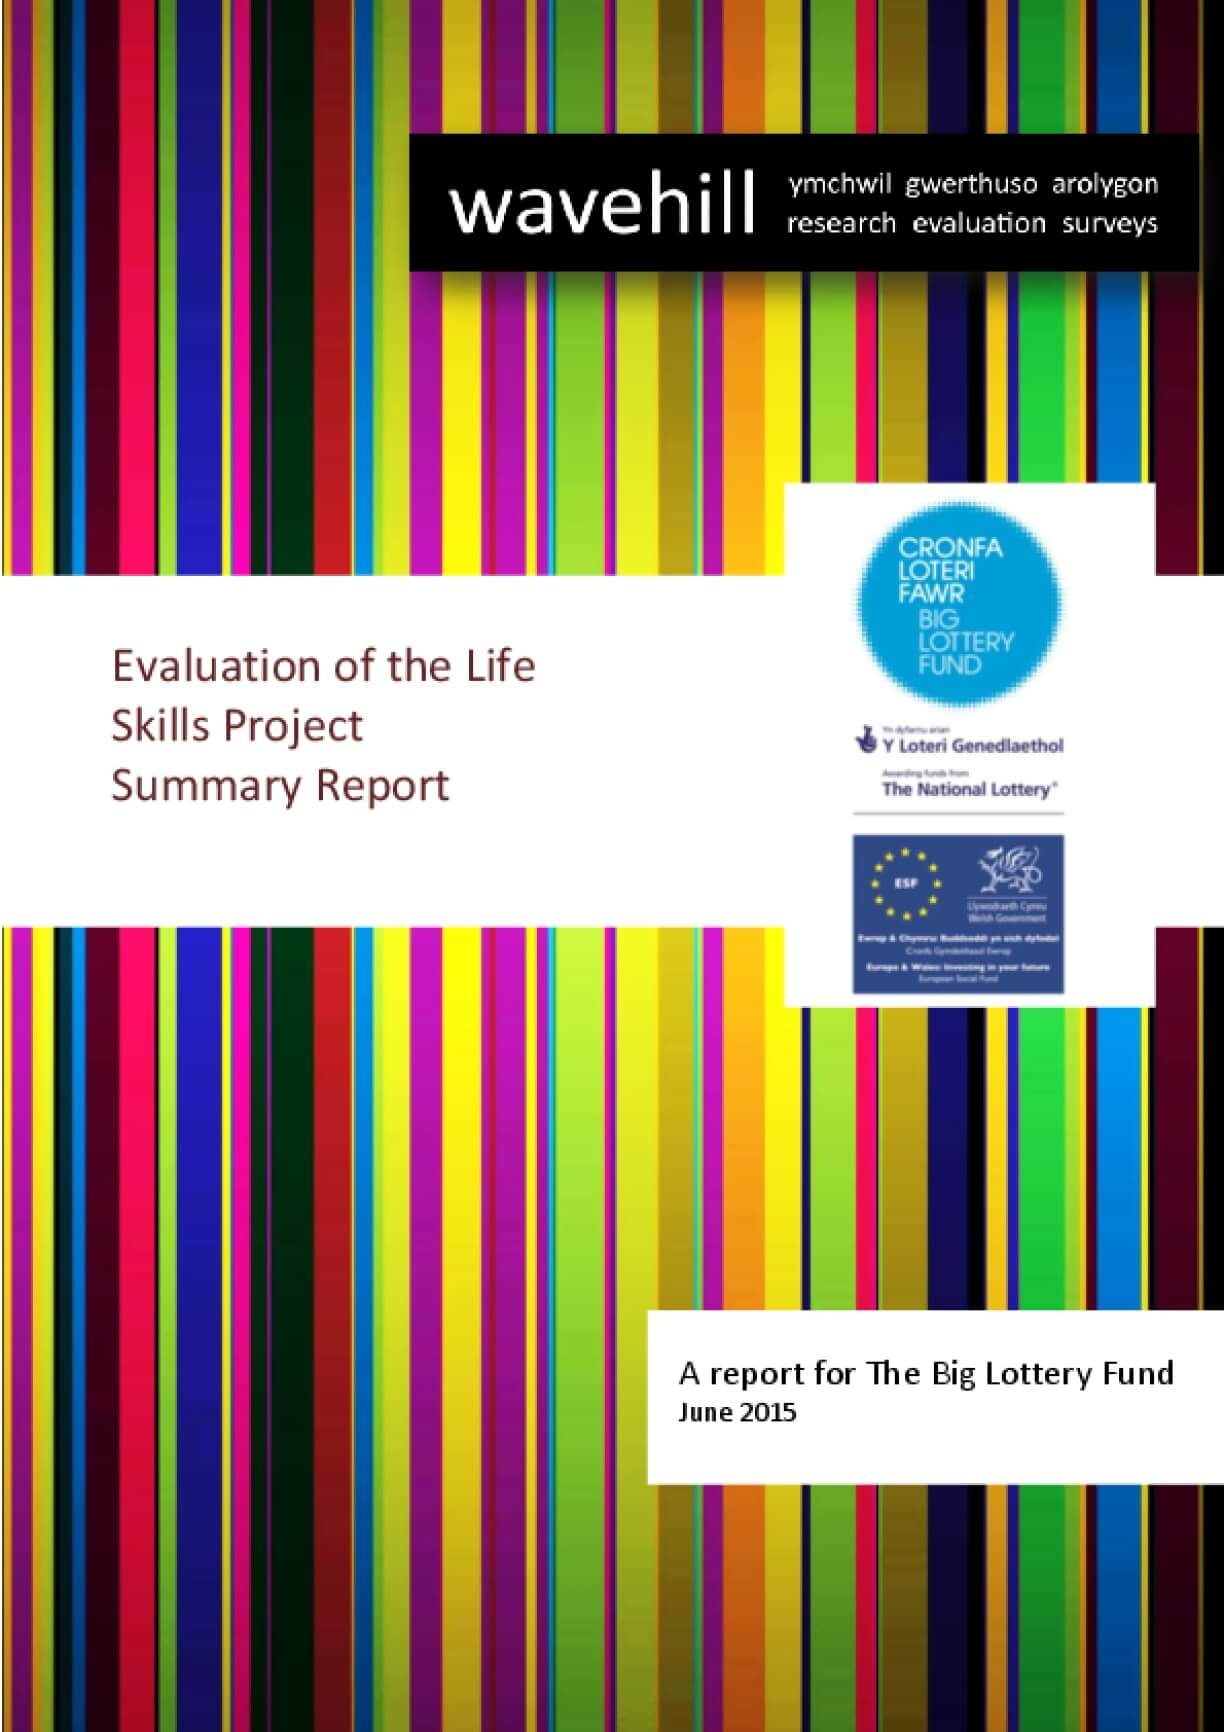 Evaluation of the Life Skills Project, Summary Report